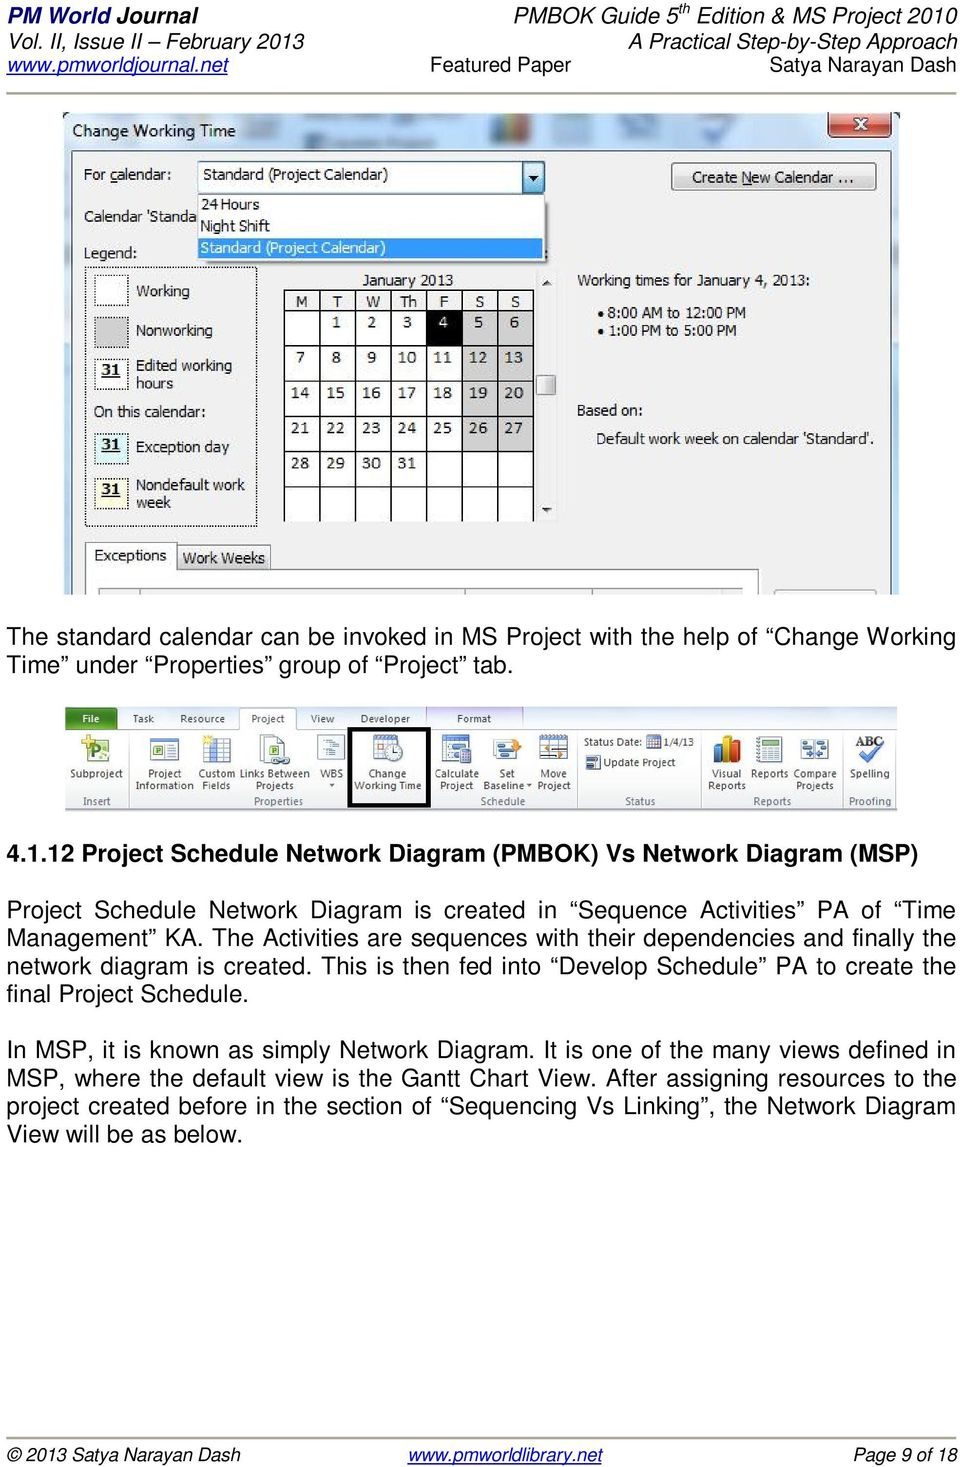 The Activities are sequences with their dependencies and finally the network diagram is created. This is then fed into Develop Schedule PA to create the final Project Schedule.